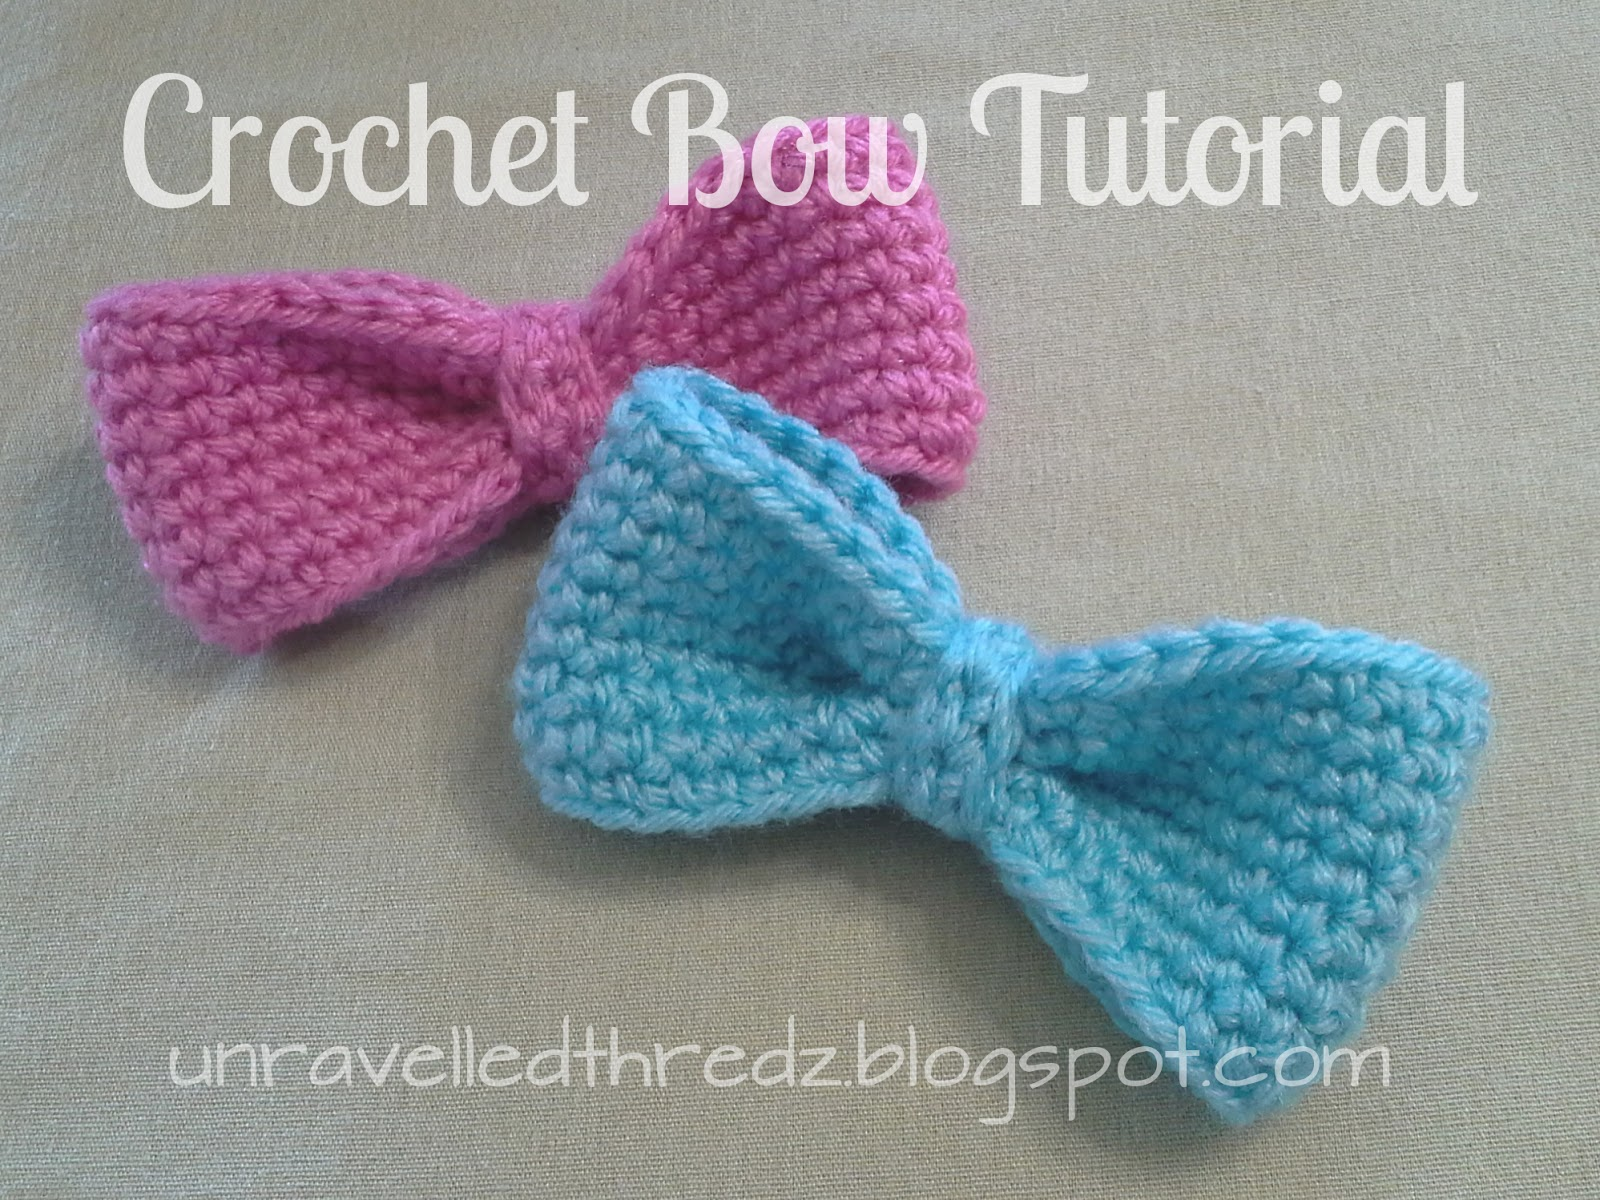 Crochet Bows Related Keywords & Suggestions - Crochet Bows Long Tail ...